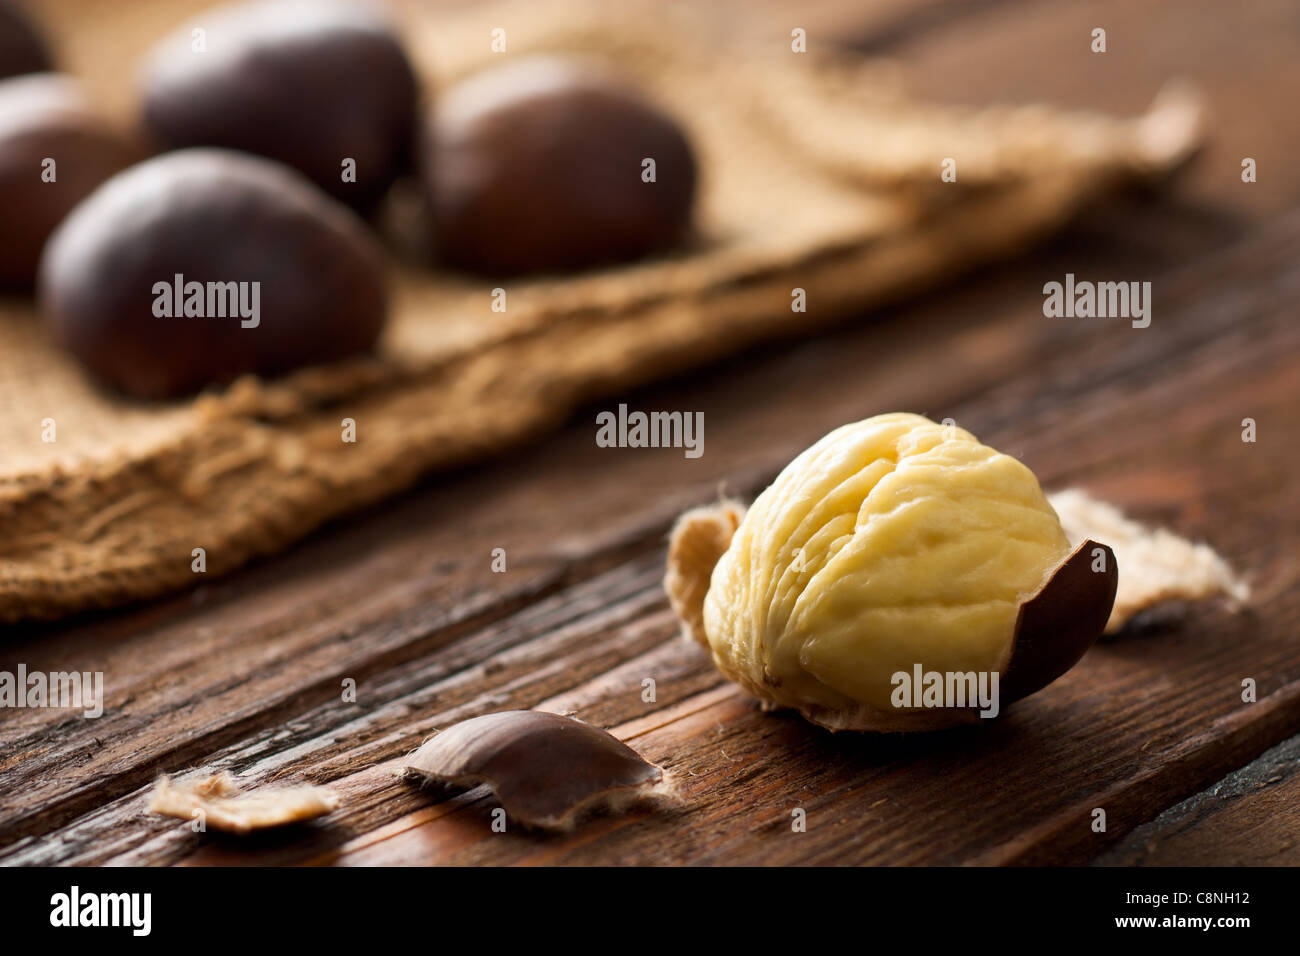 Raw Chestnuts on Wood with Jute - Stock Image